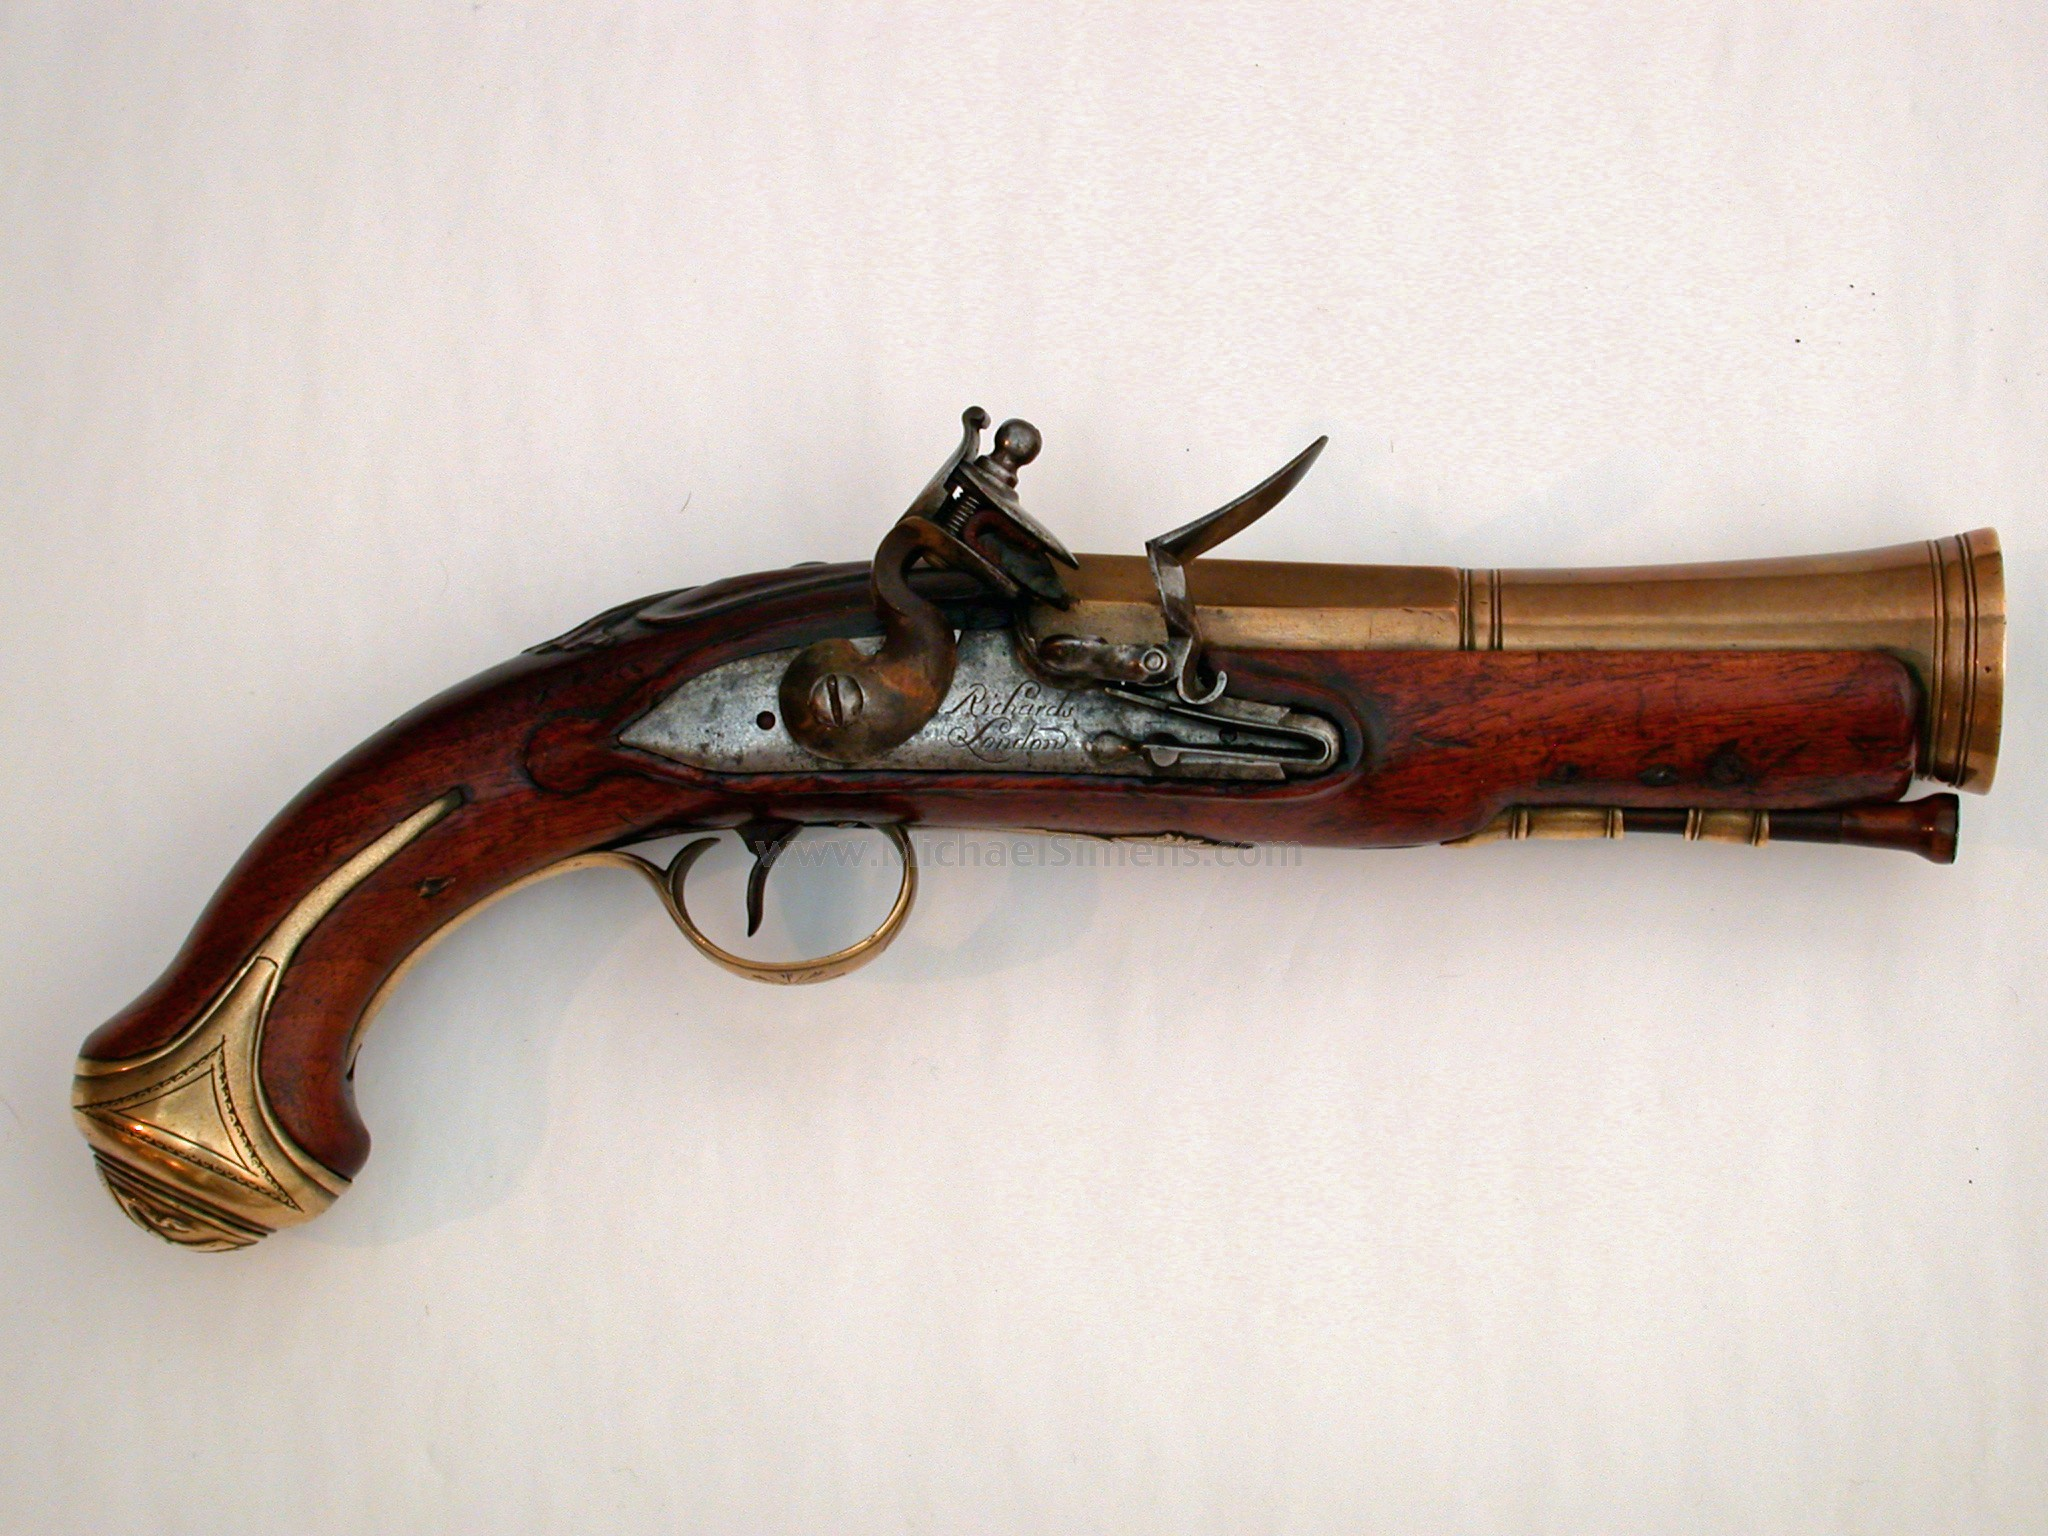 Replica Pirate Blunderbuss Pistol - Decor /Oddities